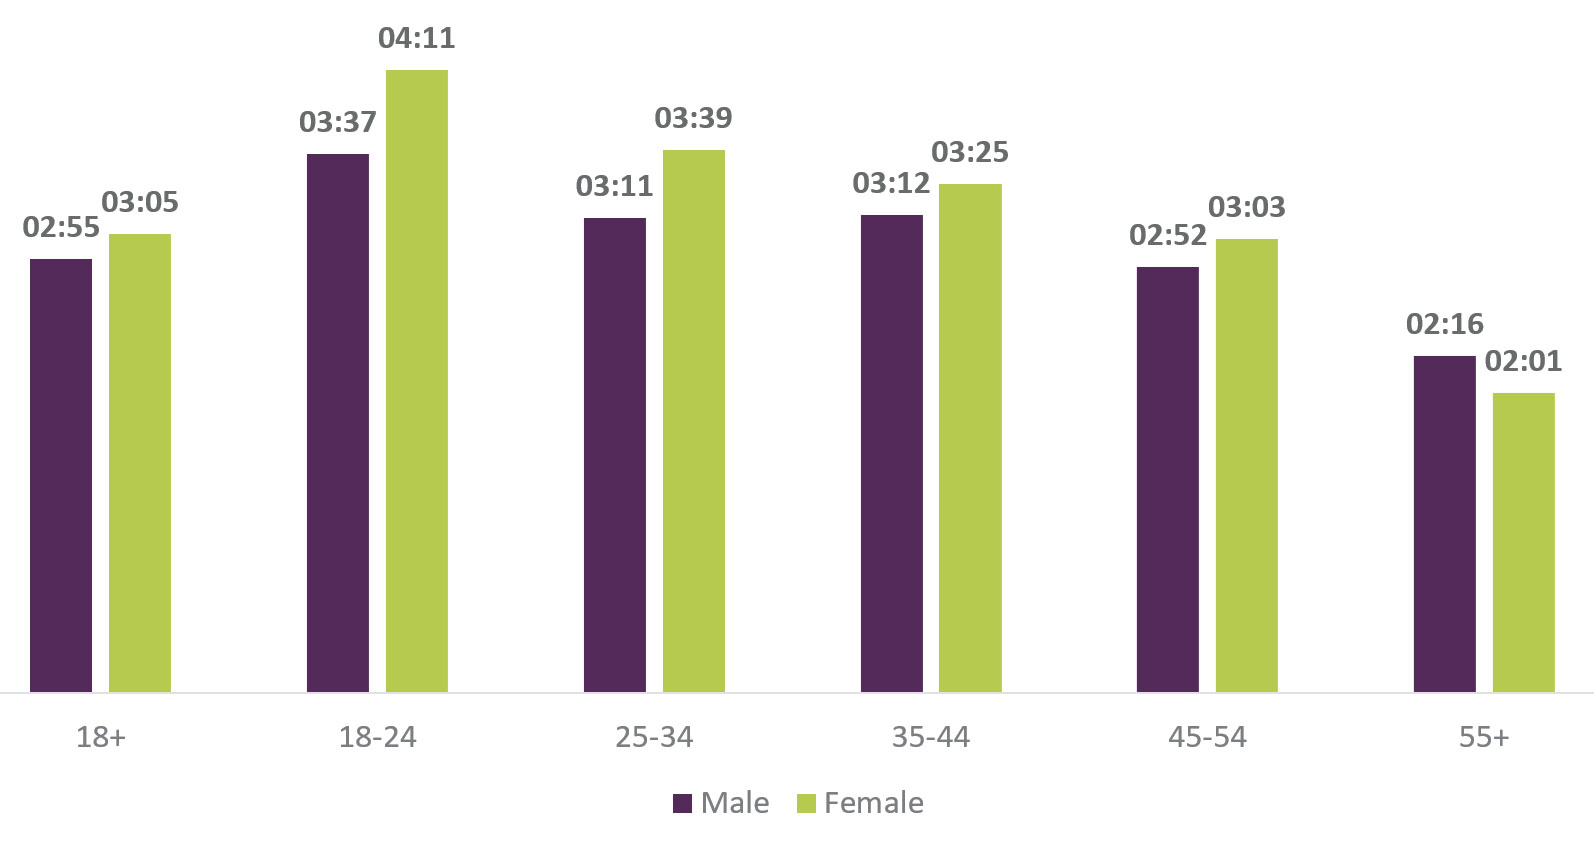 Bar chart showing average time spent online by age group and gender. The most time is spent by 18-24 year olds (3 hours 37 minutes for men; 4 hours 11 minutes for women), and the least is 55-and-overs (2 hours 16 minutes for women; 2 hours 1 minute for women).